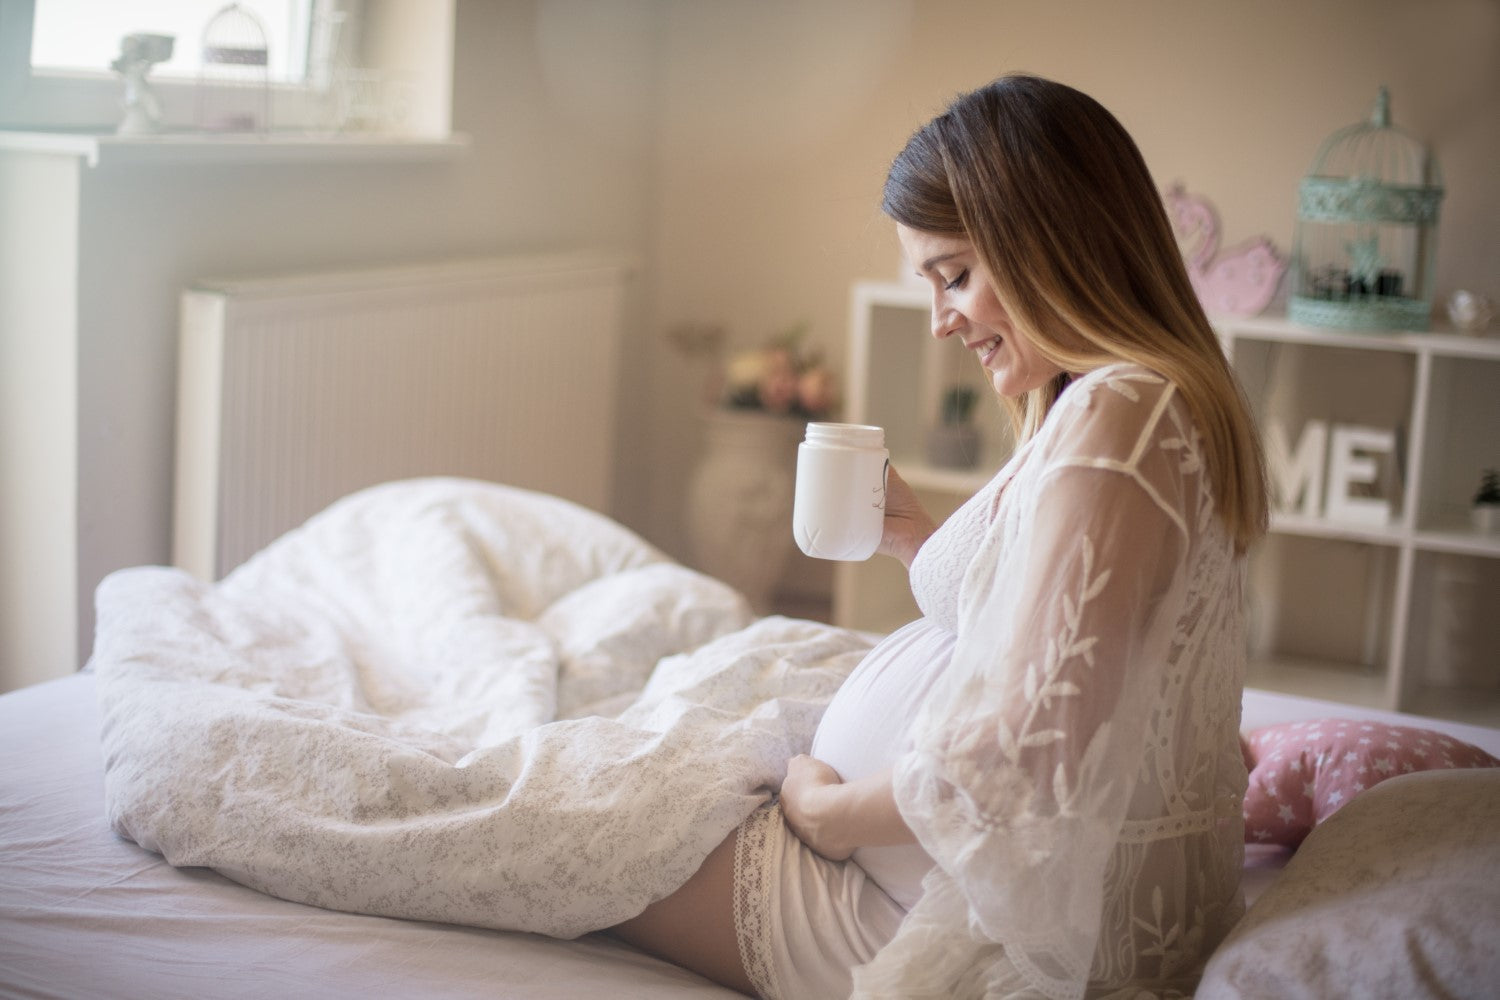 pregnant woman drinking coffee in bed